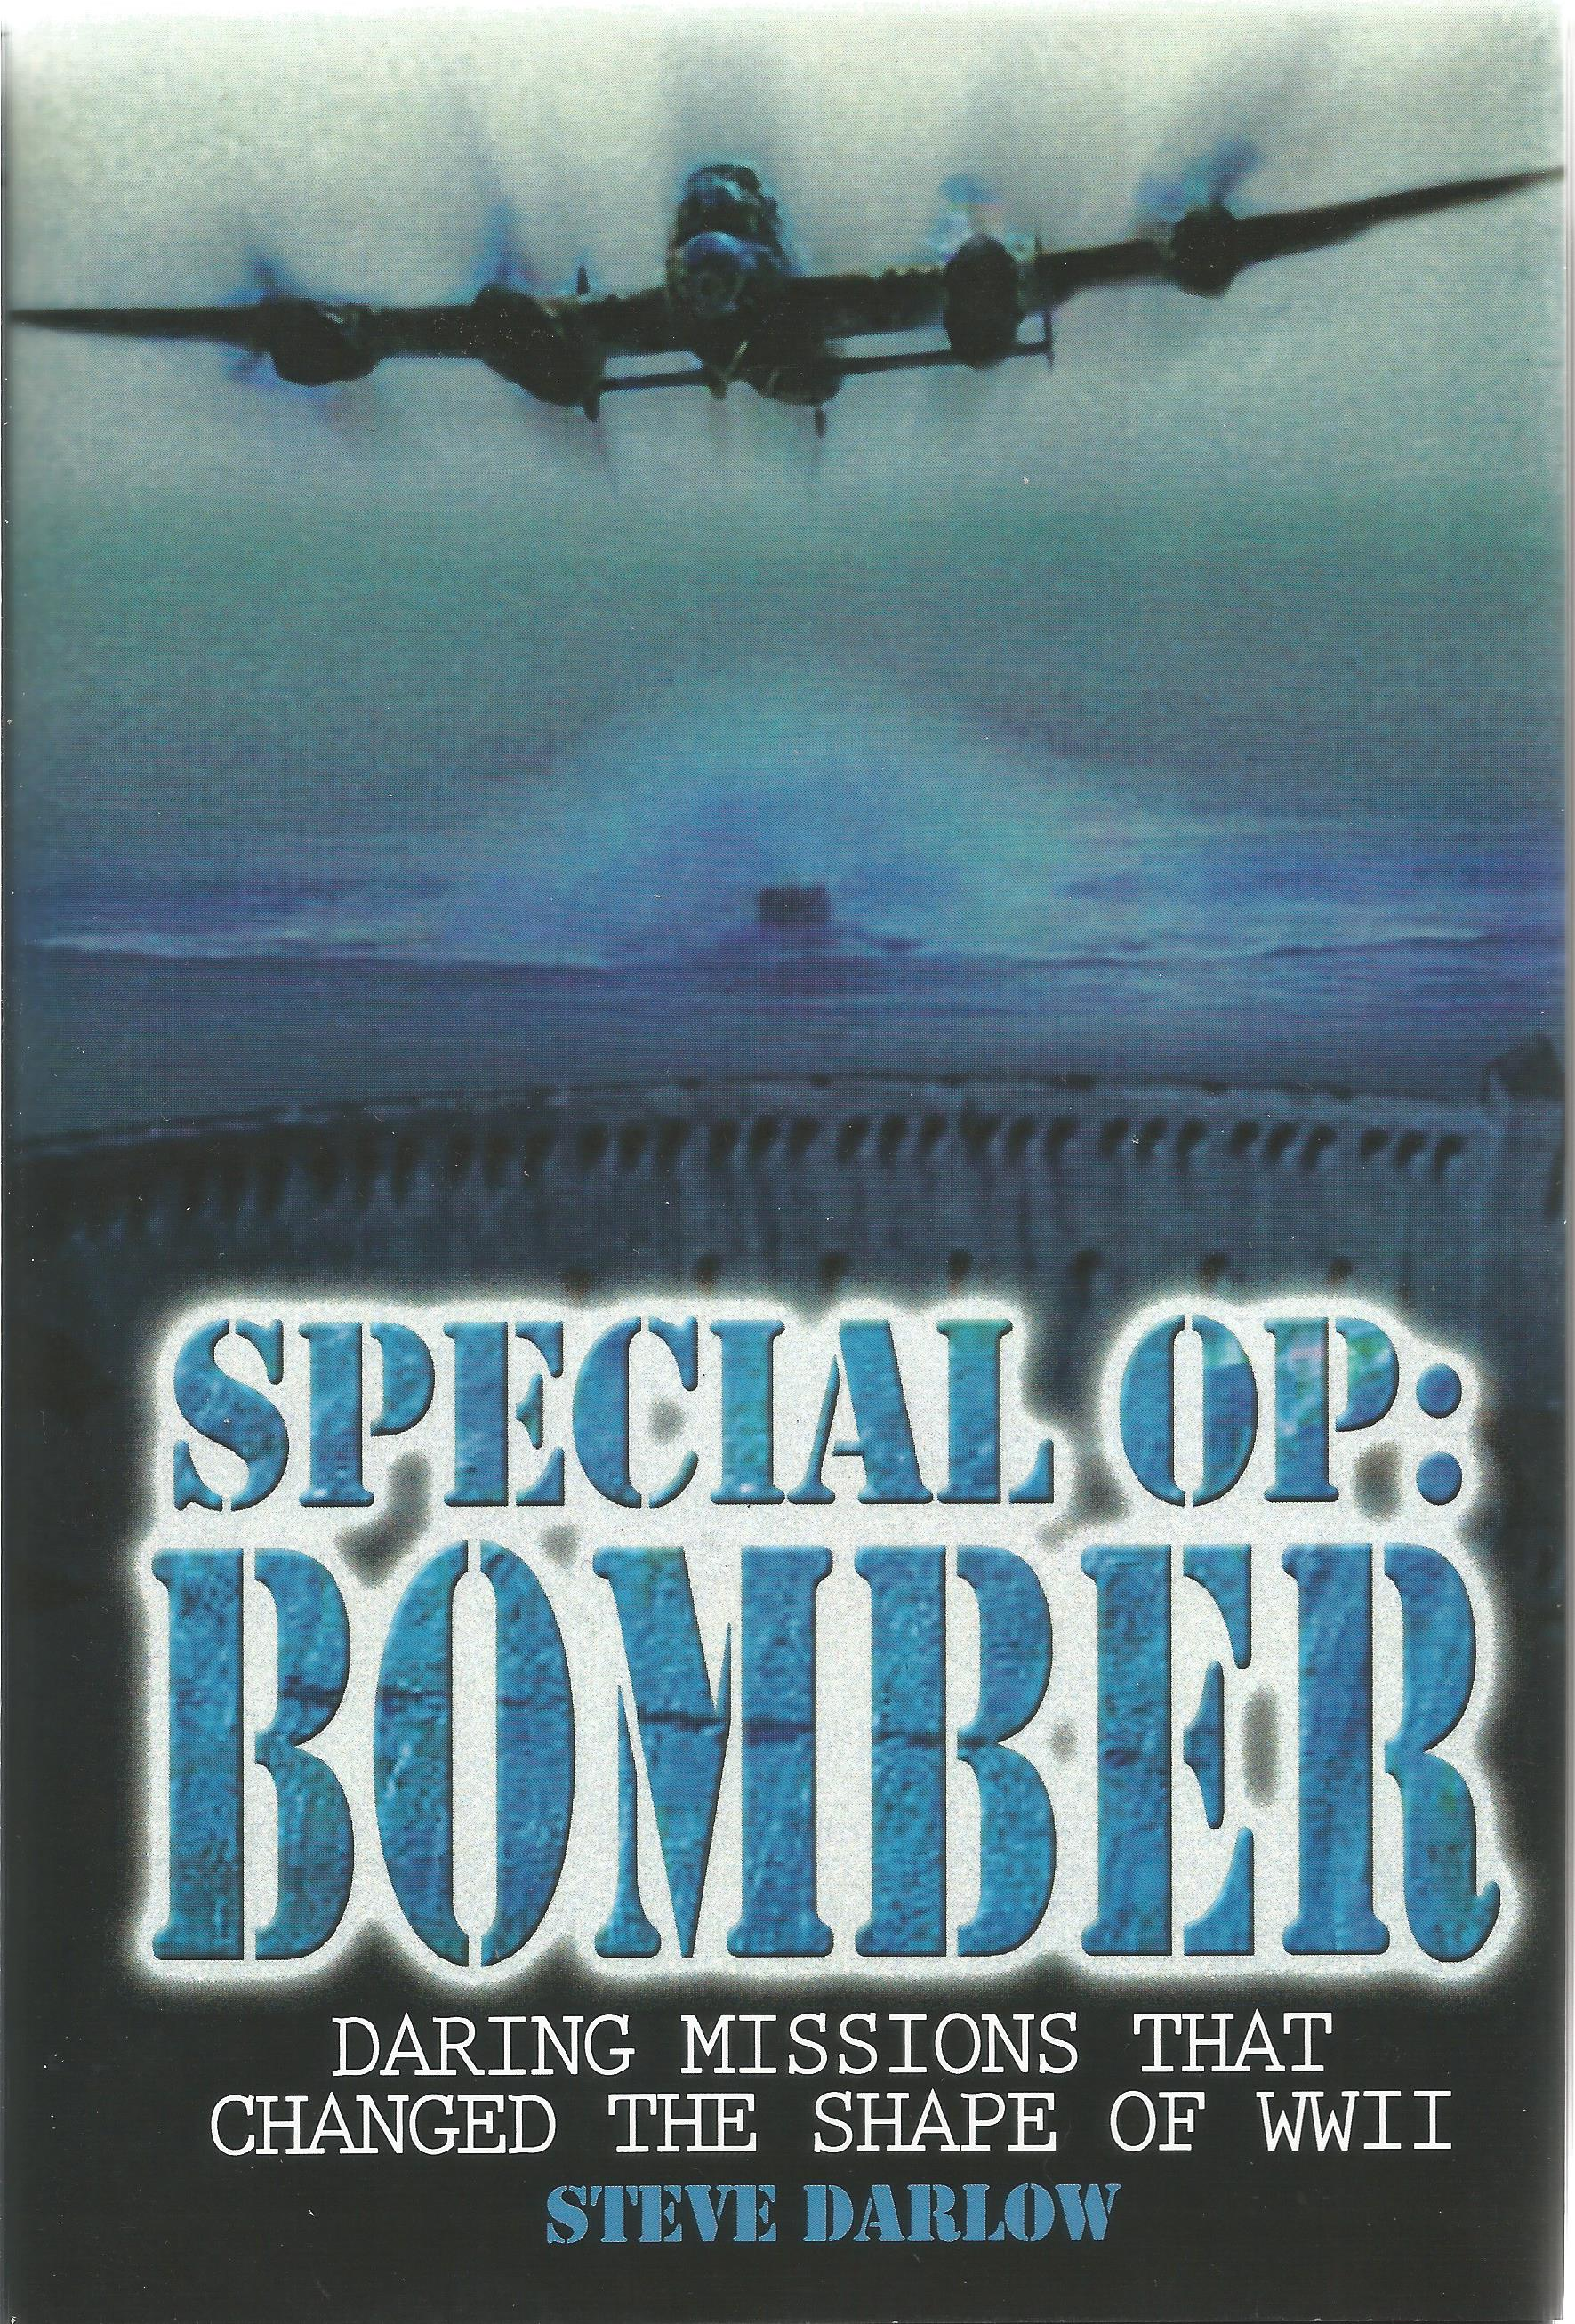 Steve Darlow. Special Op: Bomber. Daring Missions That Changed the Shape of WW2. A First Edition